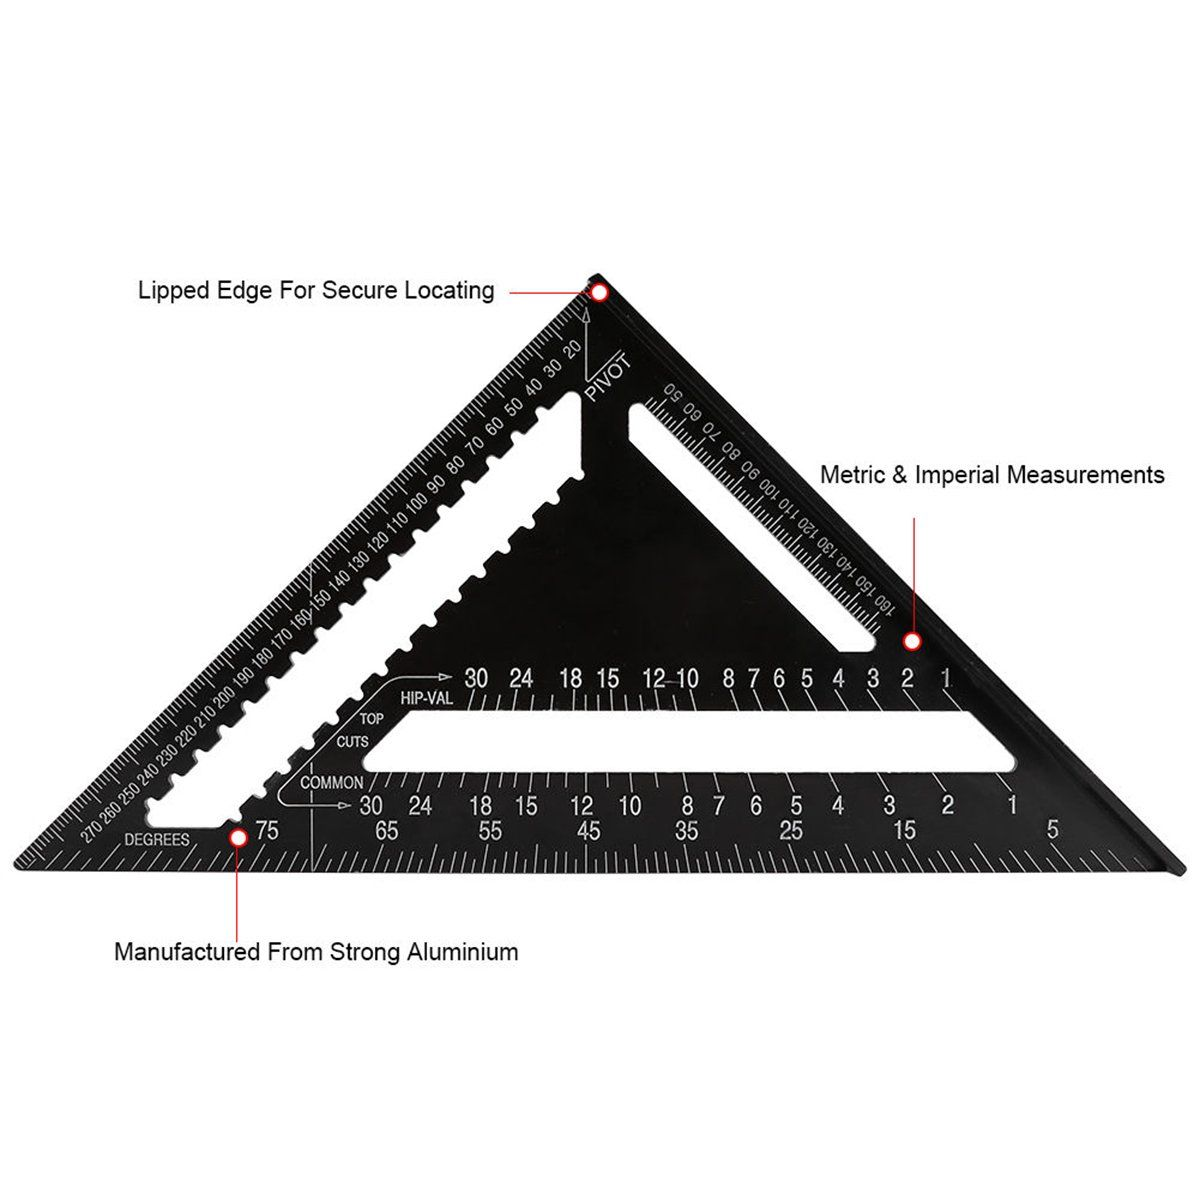 Ertianang Aluminium Roofing Trisquare Ruler 12 Inch Rafter Angle Frame Black For Carpenter Woodworking Meas Measuring Tools Woodworking Woodworking Tools Ruler